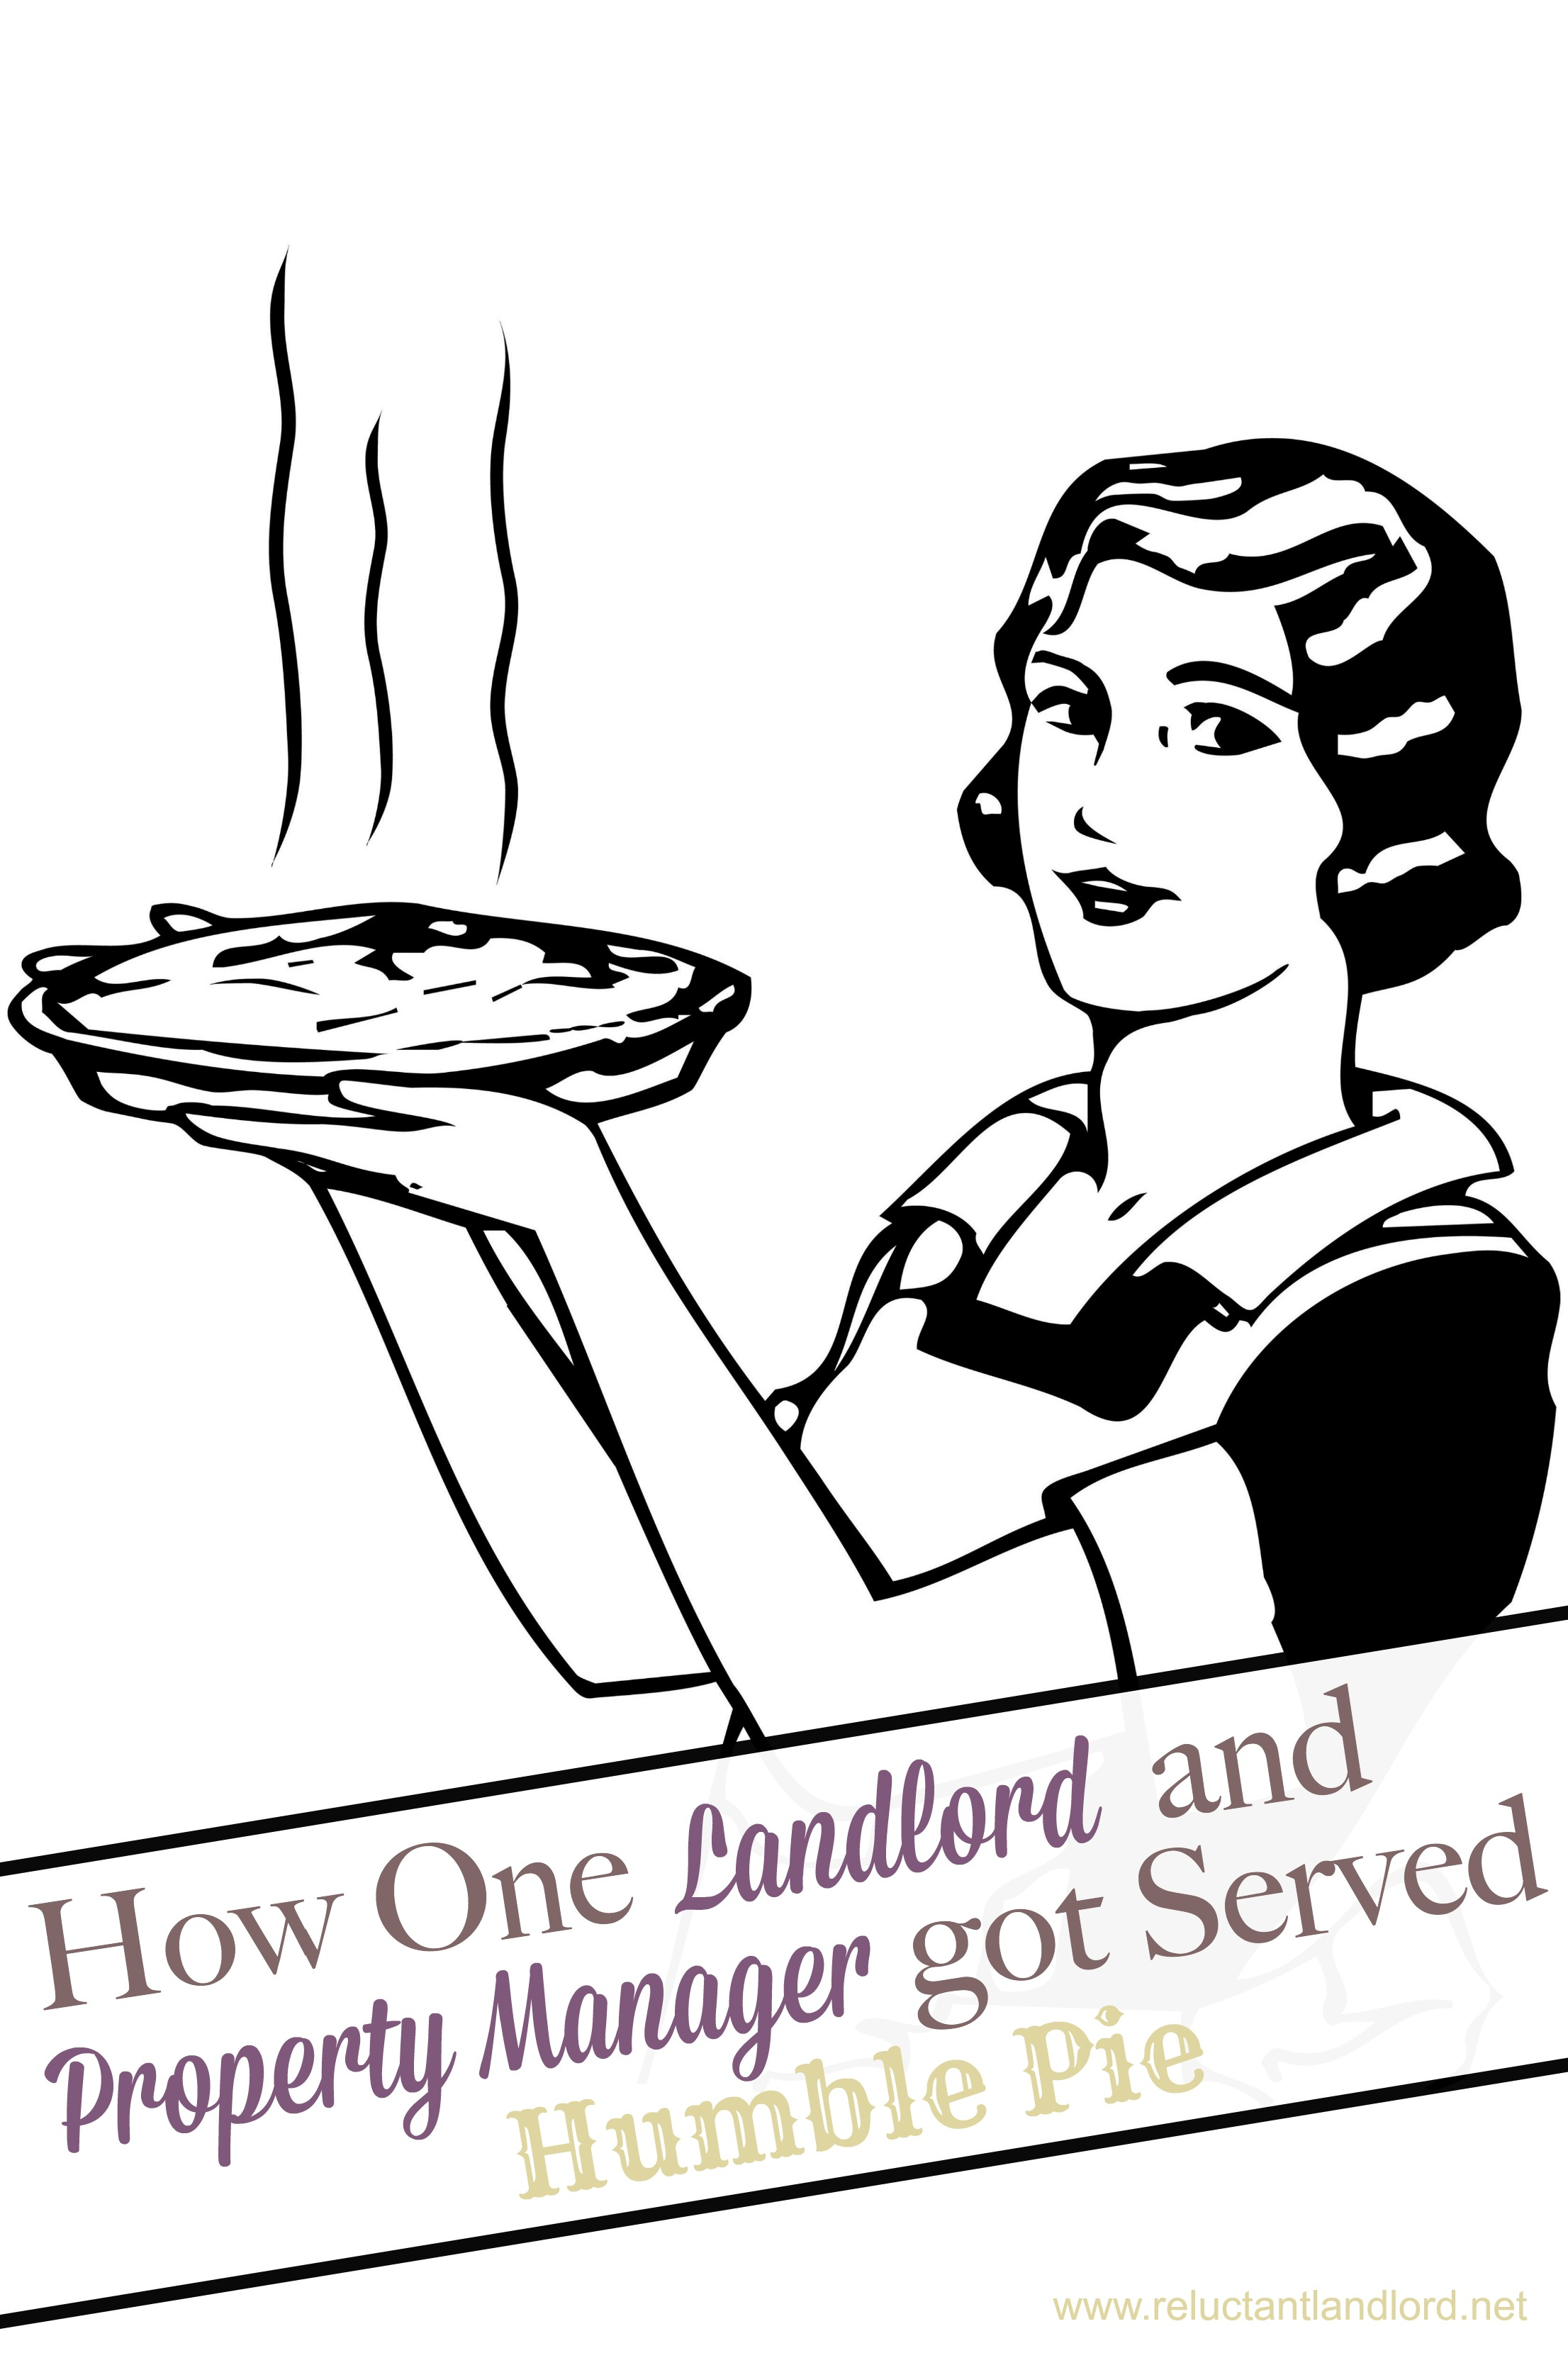 How One Landlord and Property Manager Got Served Humble Pie